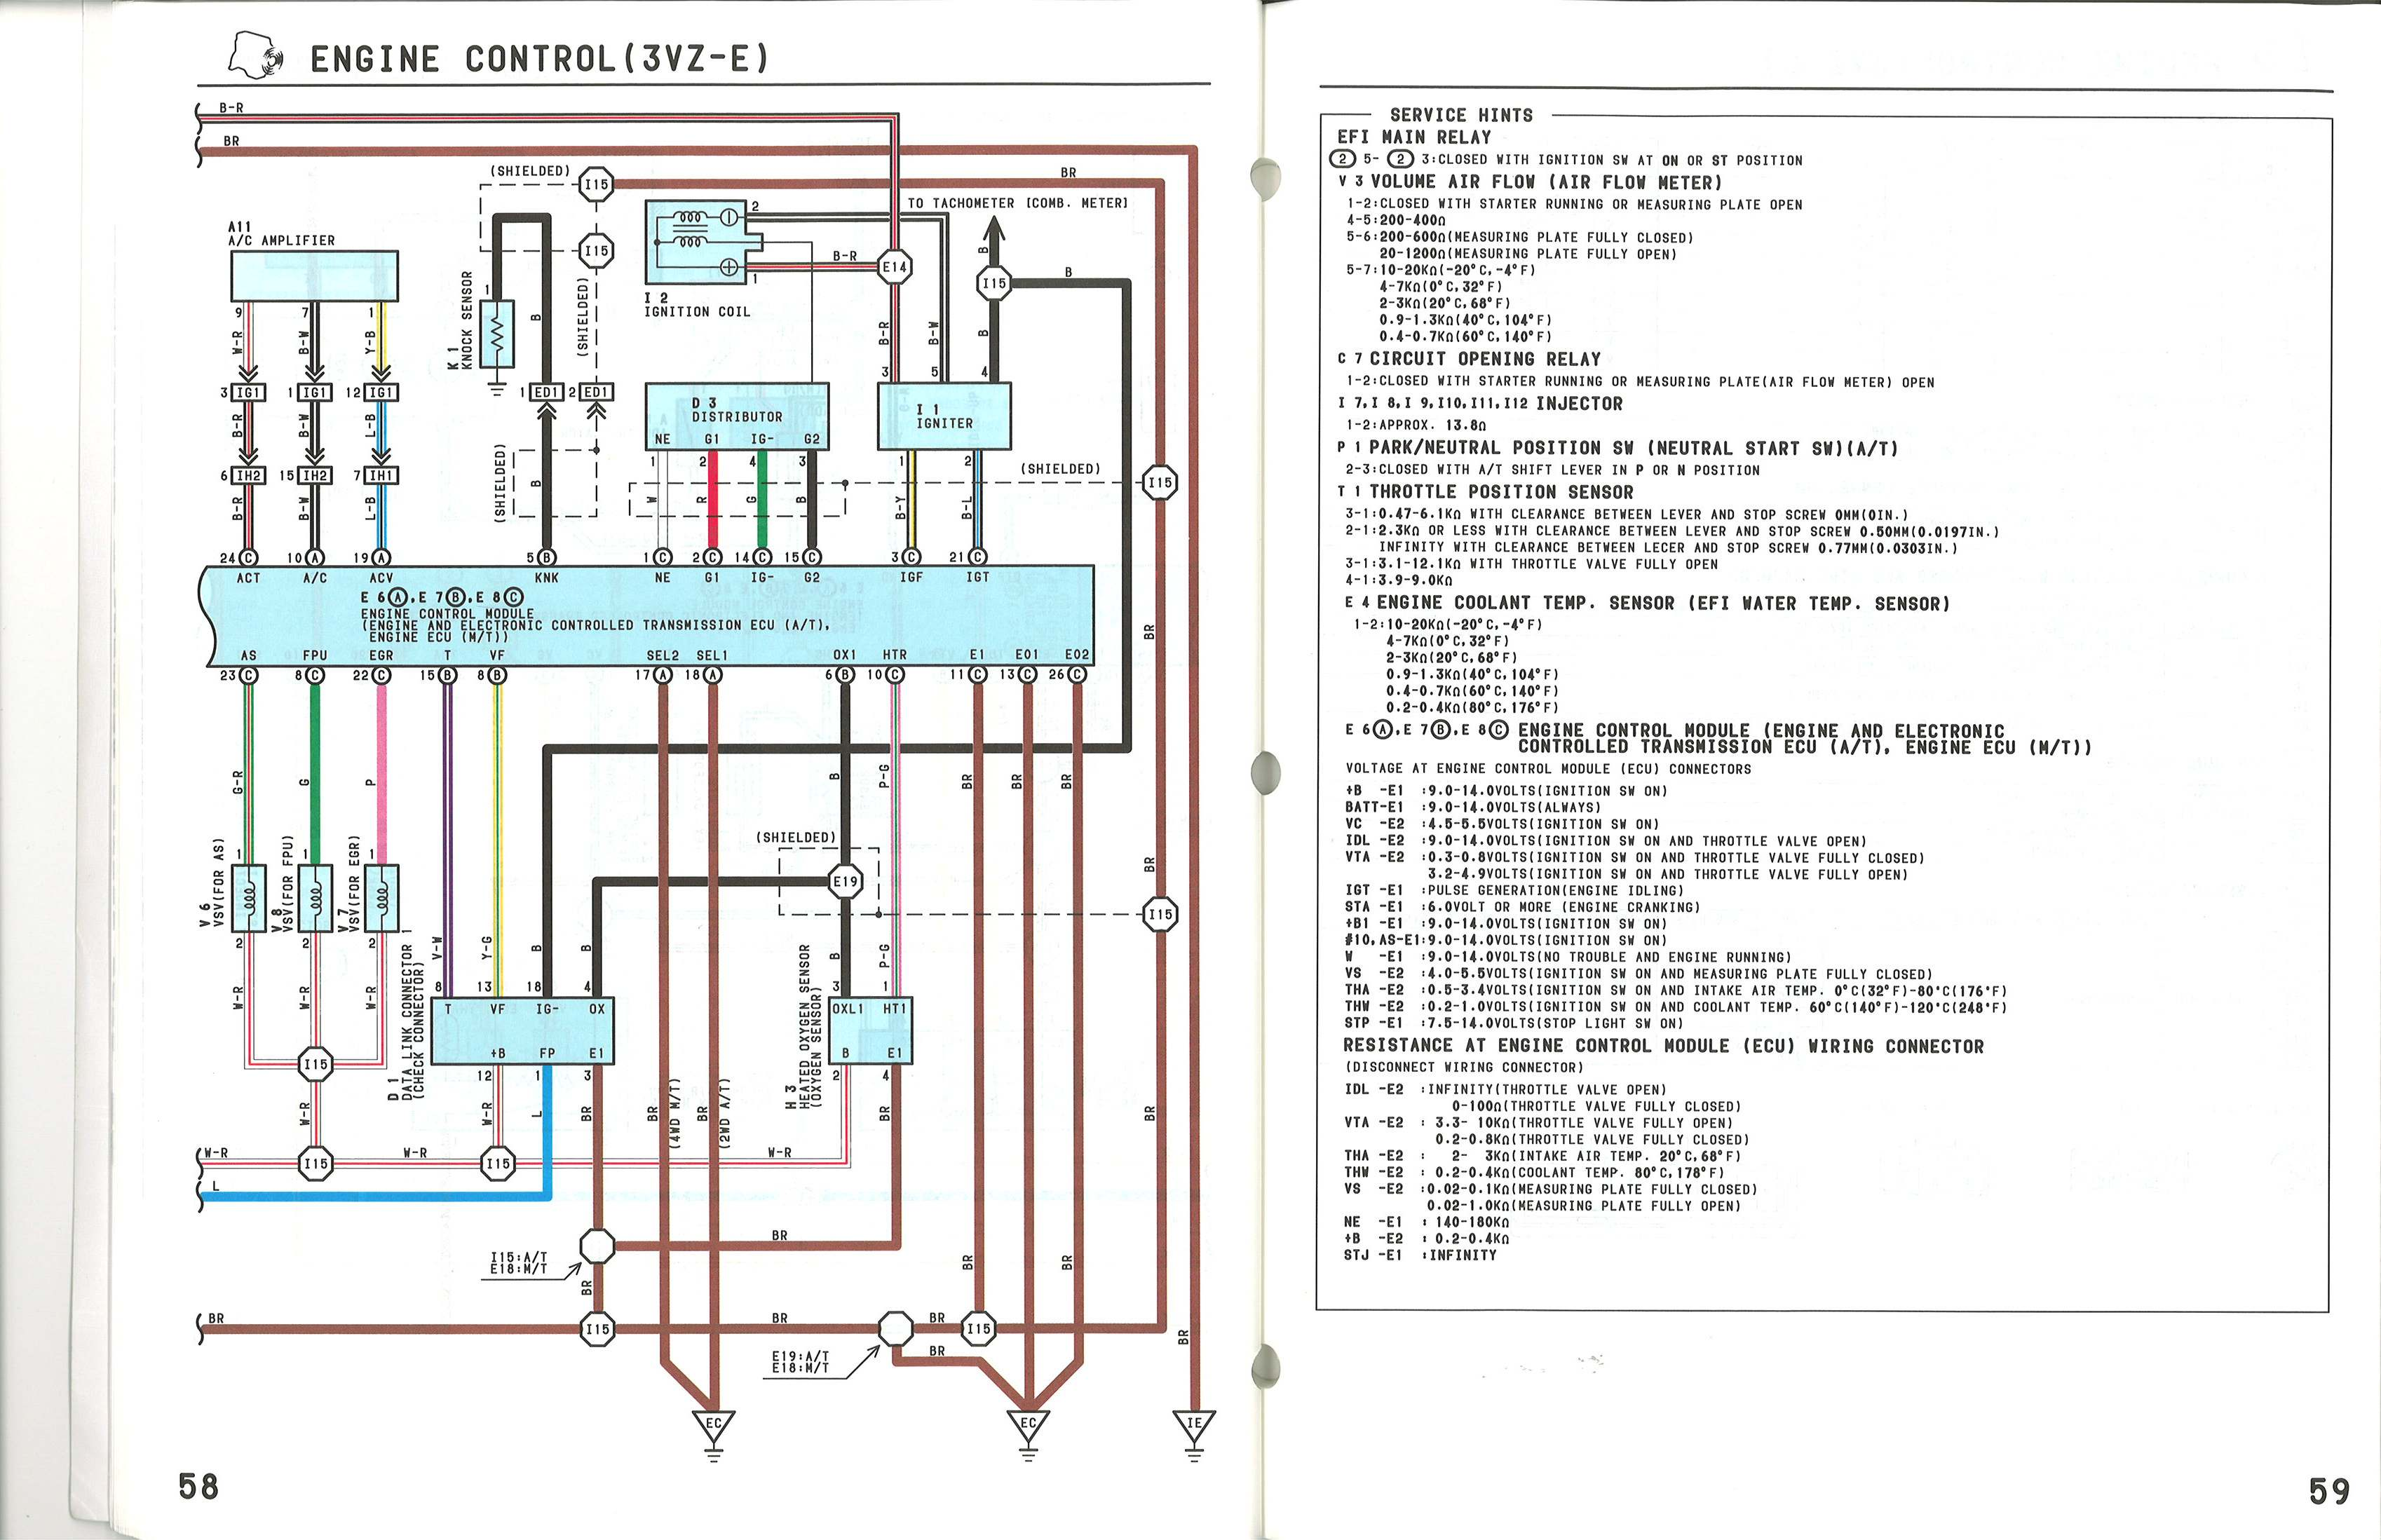 Engine_Control_3vze_3 ecu diagram for 1988 3vz e yotatech forums 1992 toyota pickup wiring harness diagram at panicattacktreatment.co